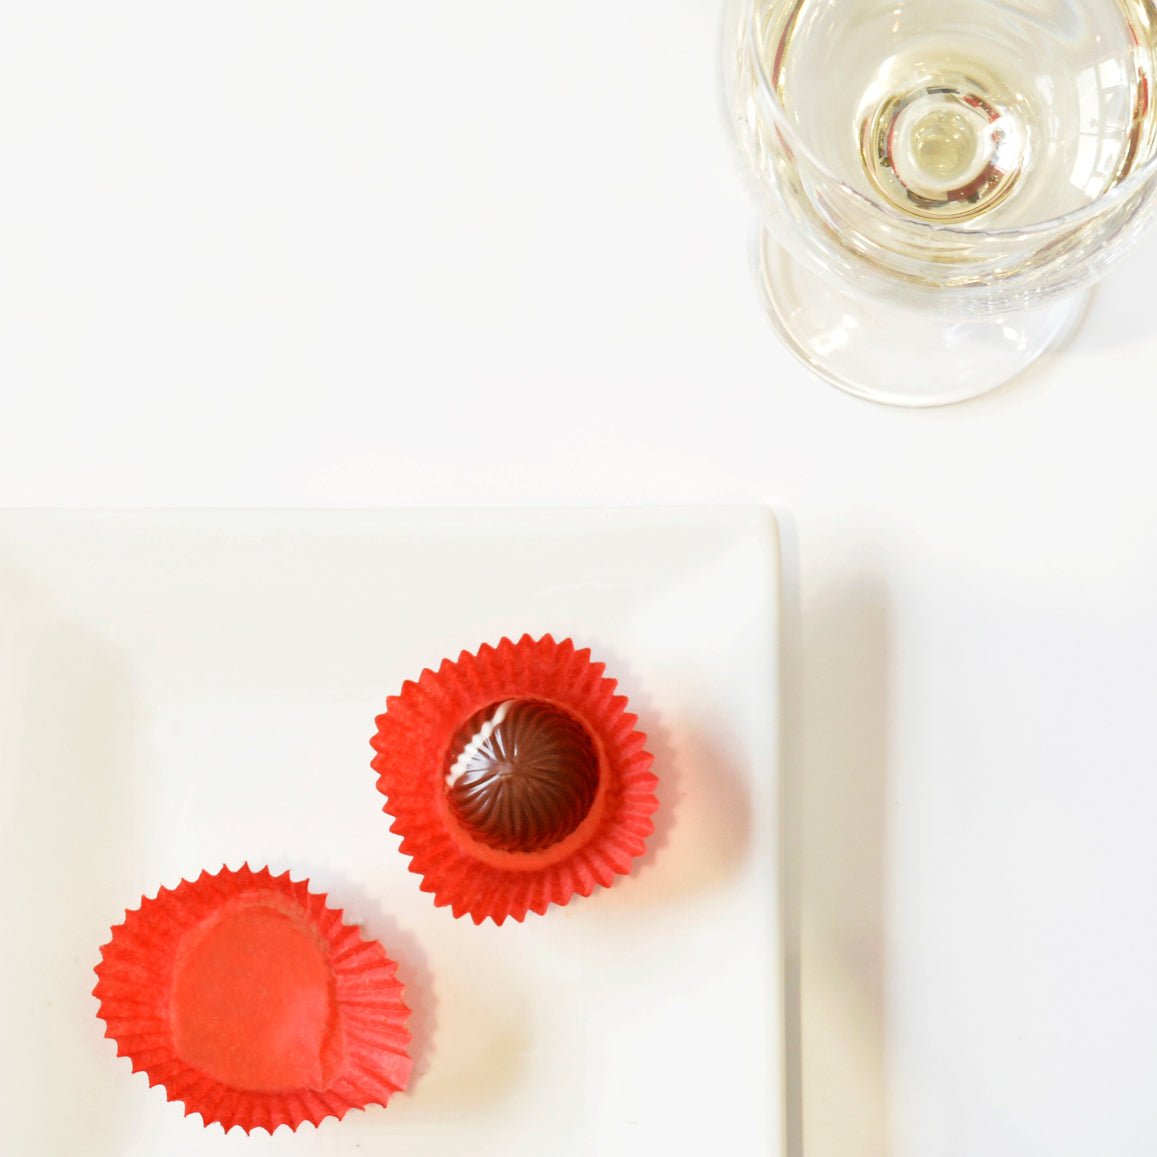 7 wine and chocolate wedding gifts